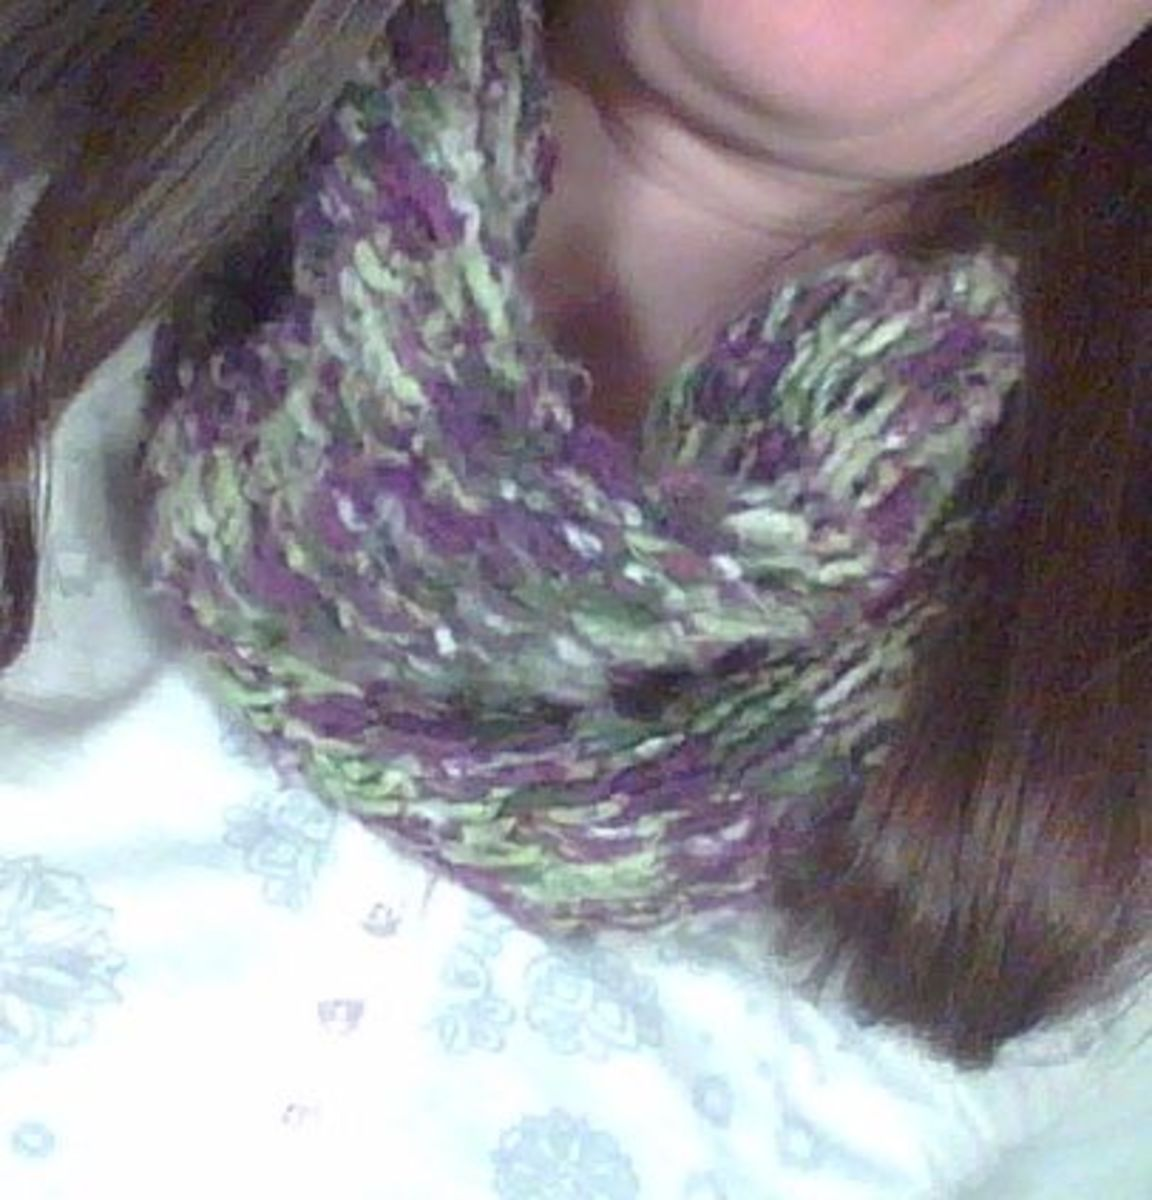 Finish the scarf by stitching the ends into the knit pattern, hiding them. The scarf is ready to wear.